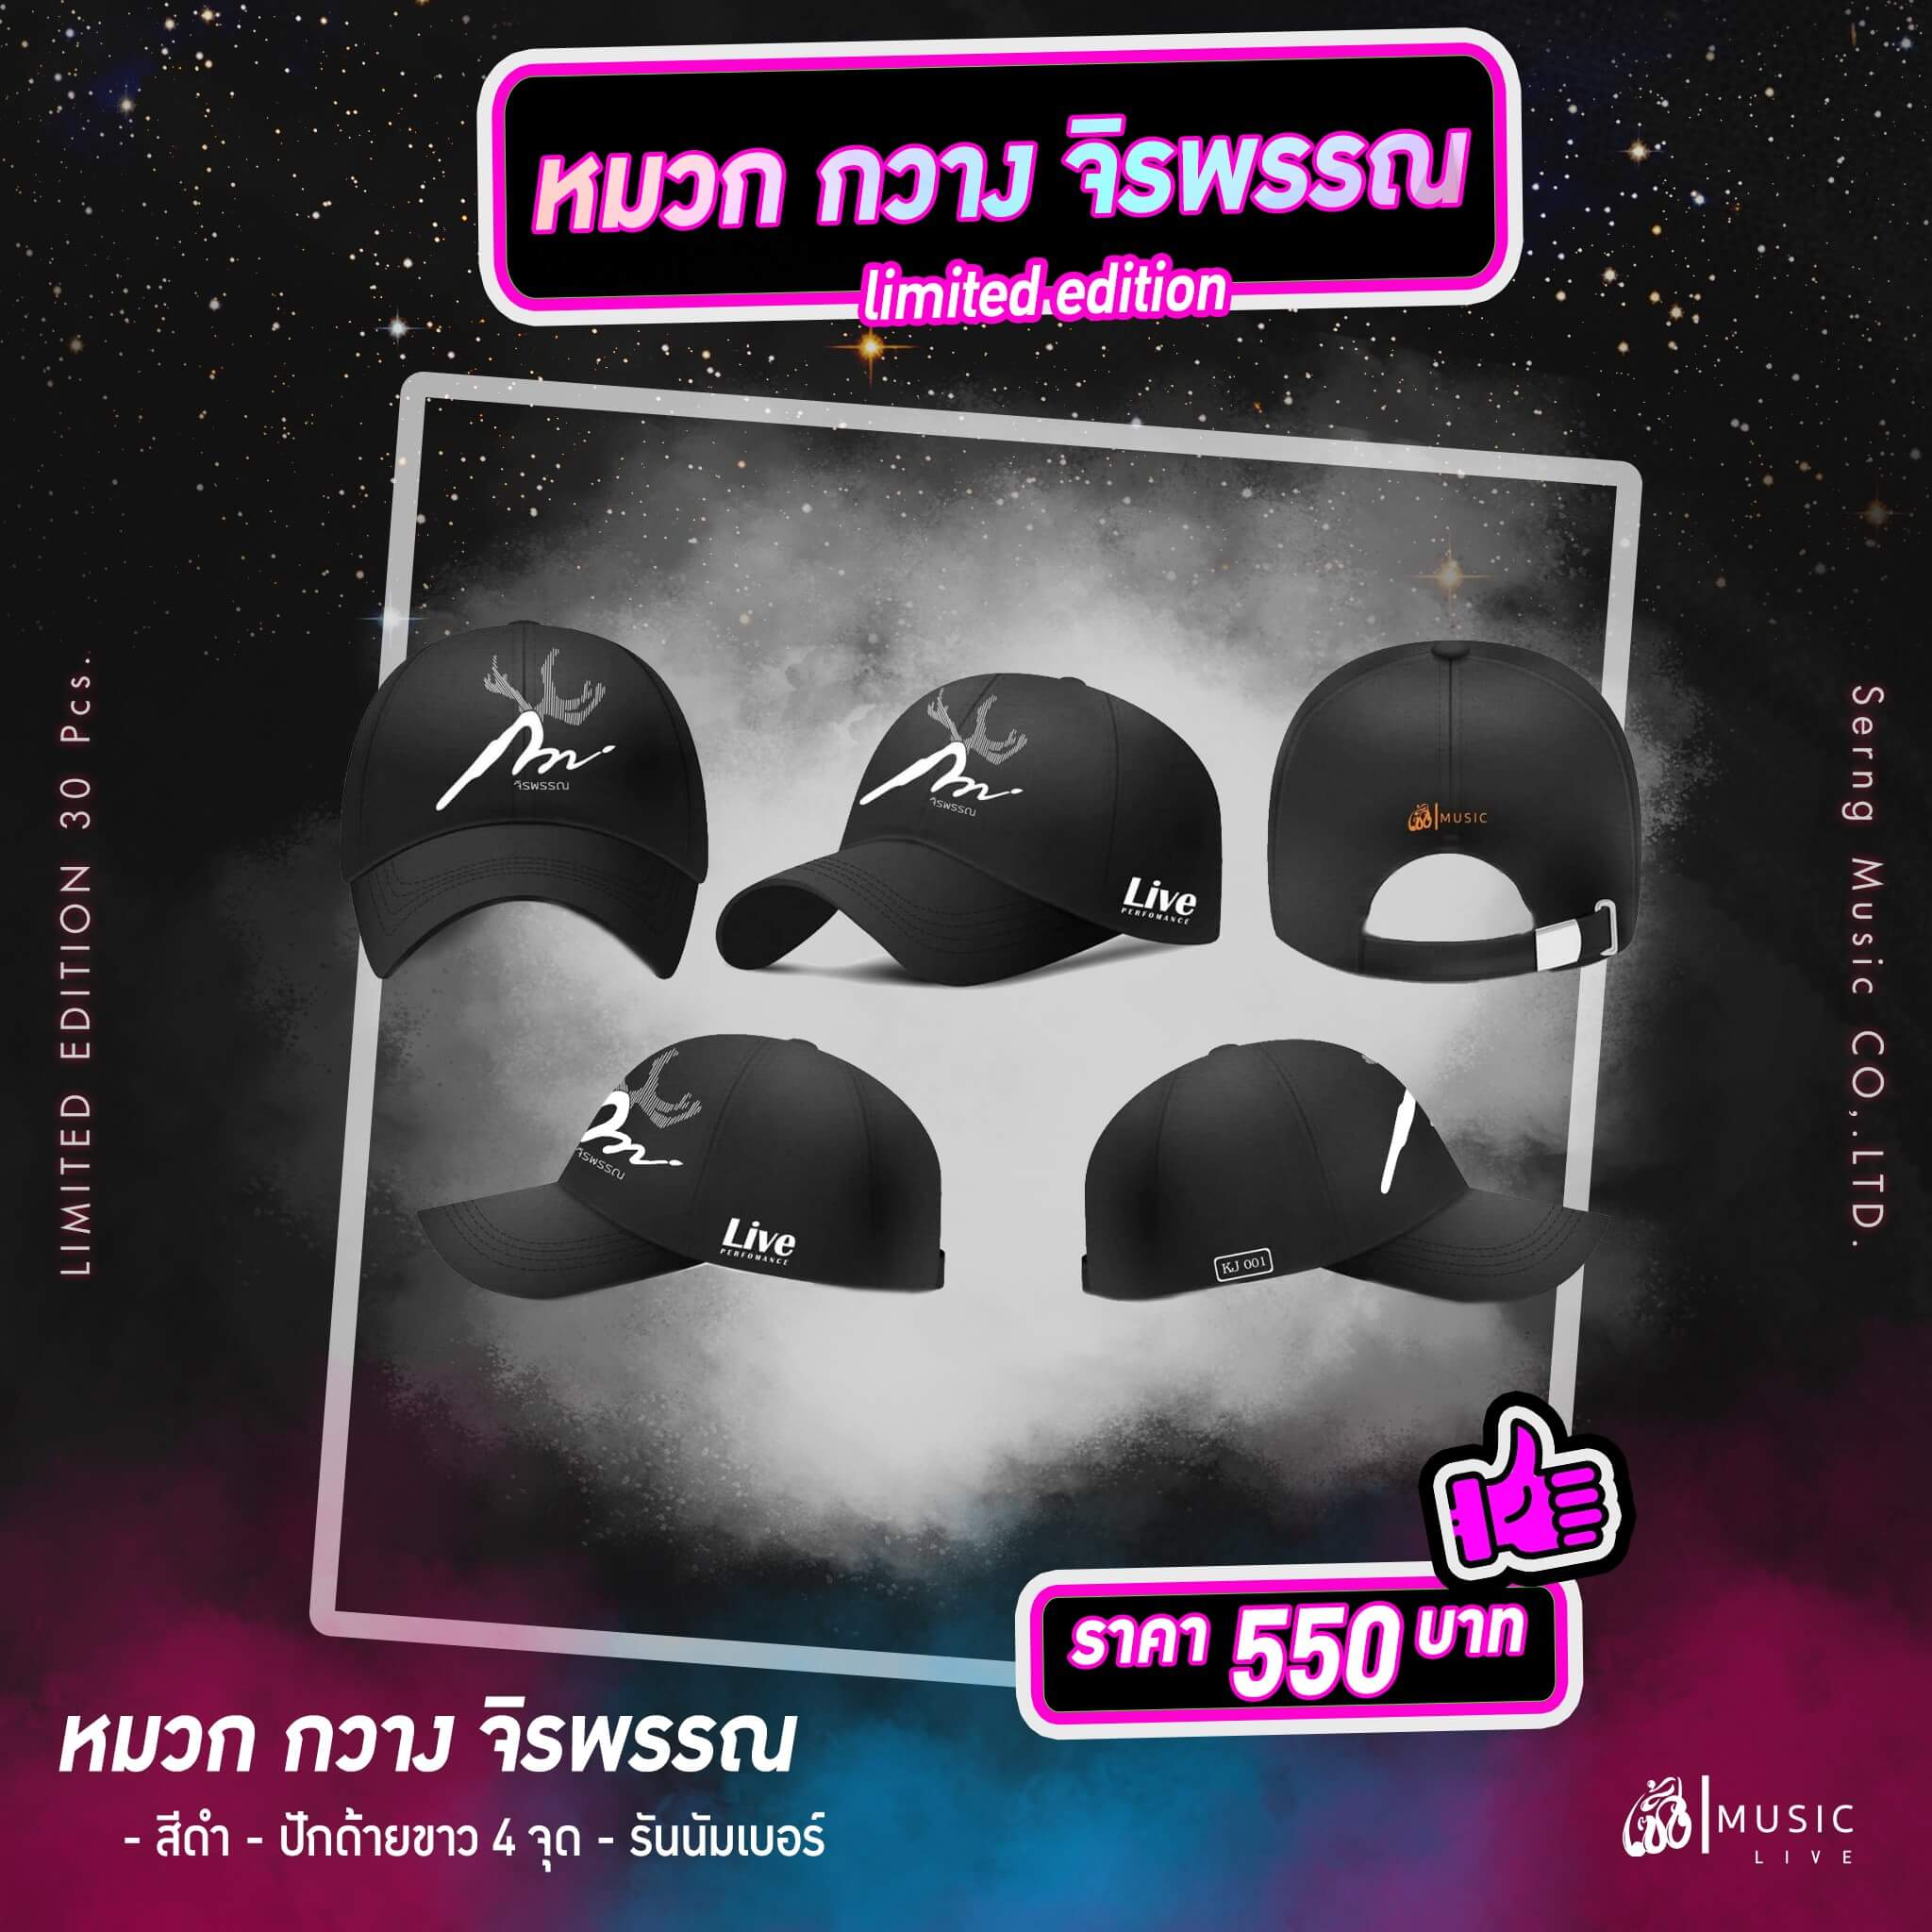 limited edition กวาง จิรพรรณ